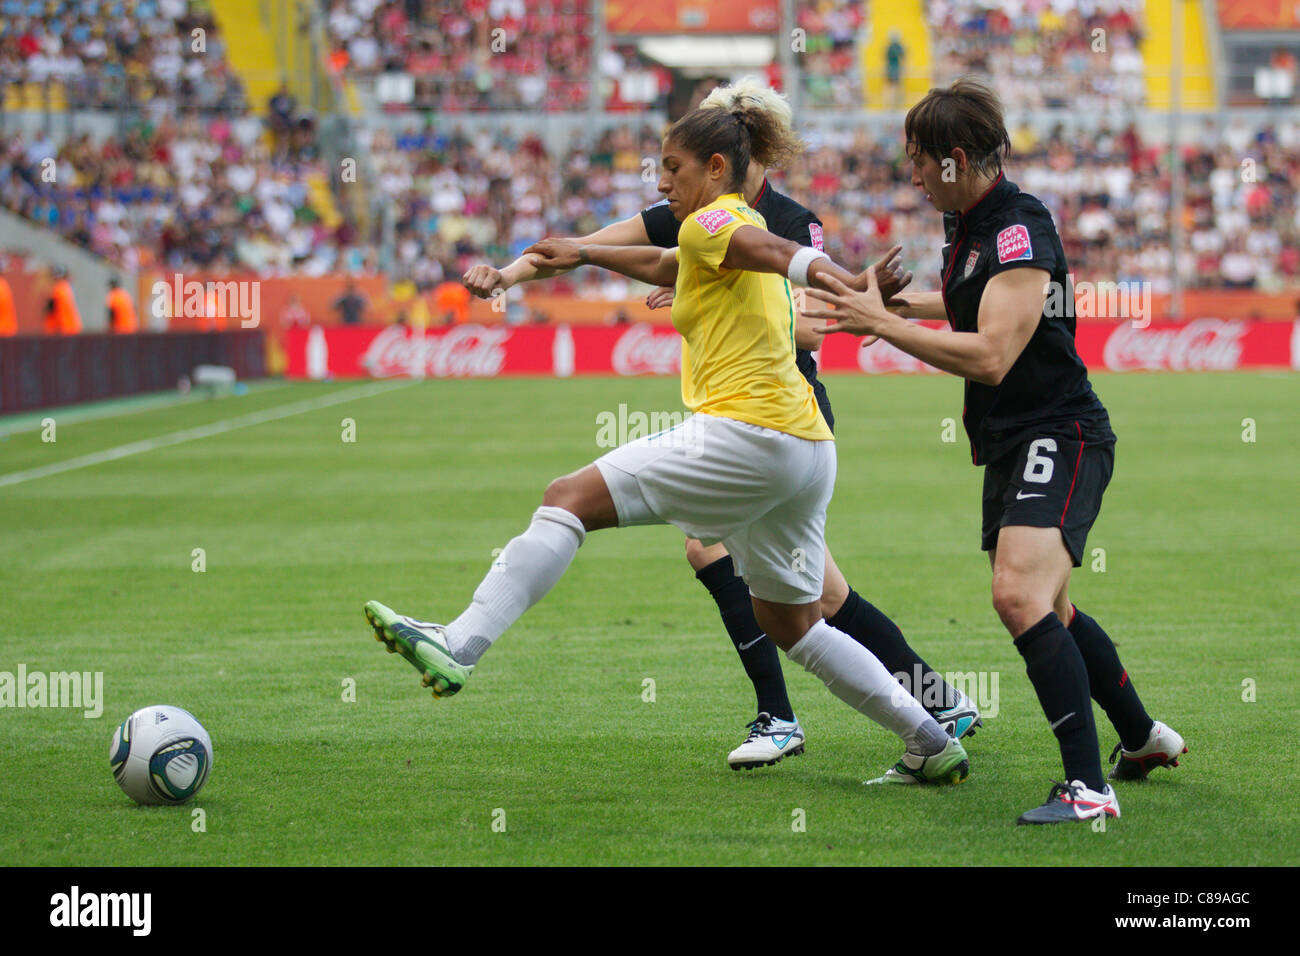 Cristiane of Brazil (L) stretches for the ball against Amy LePeilbet of the USA (R) during 2011 Women's World - Stock Image